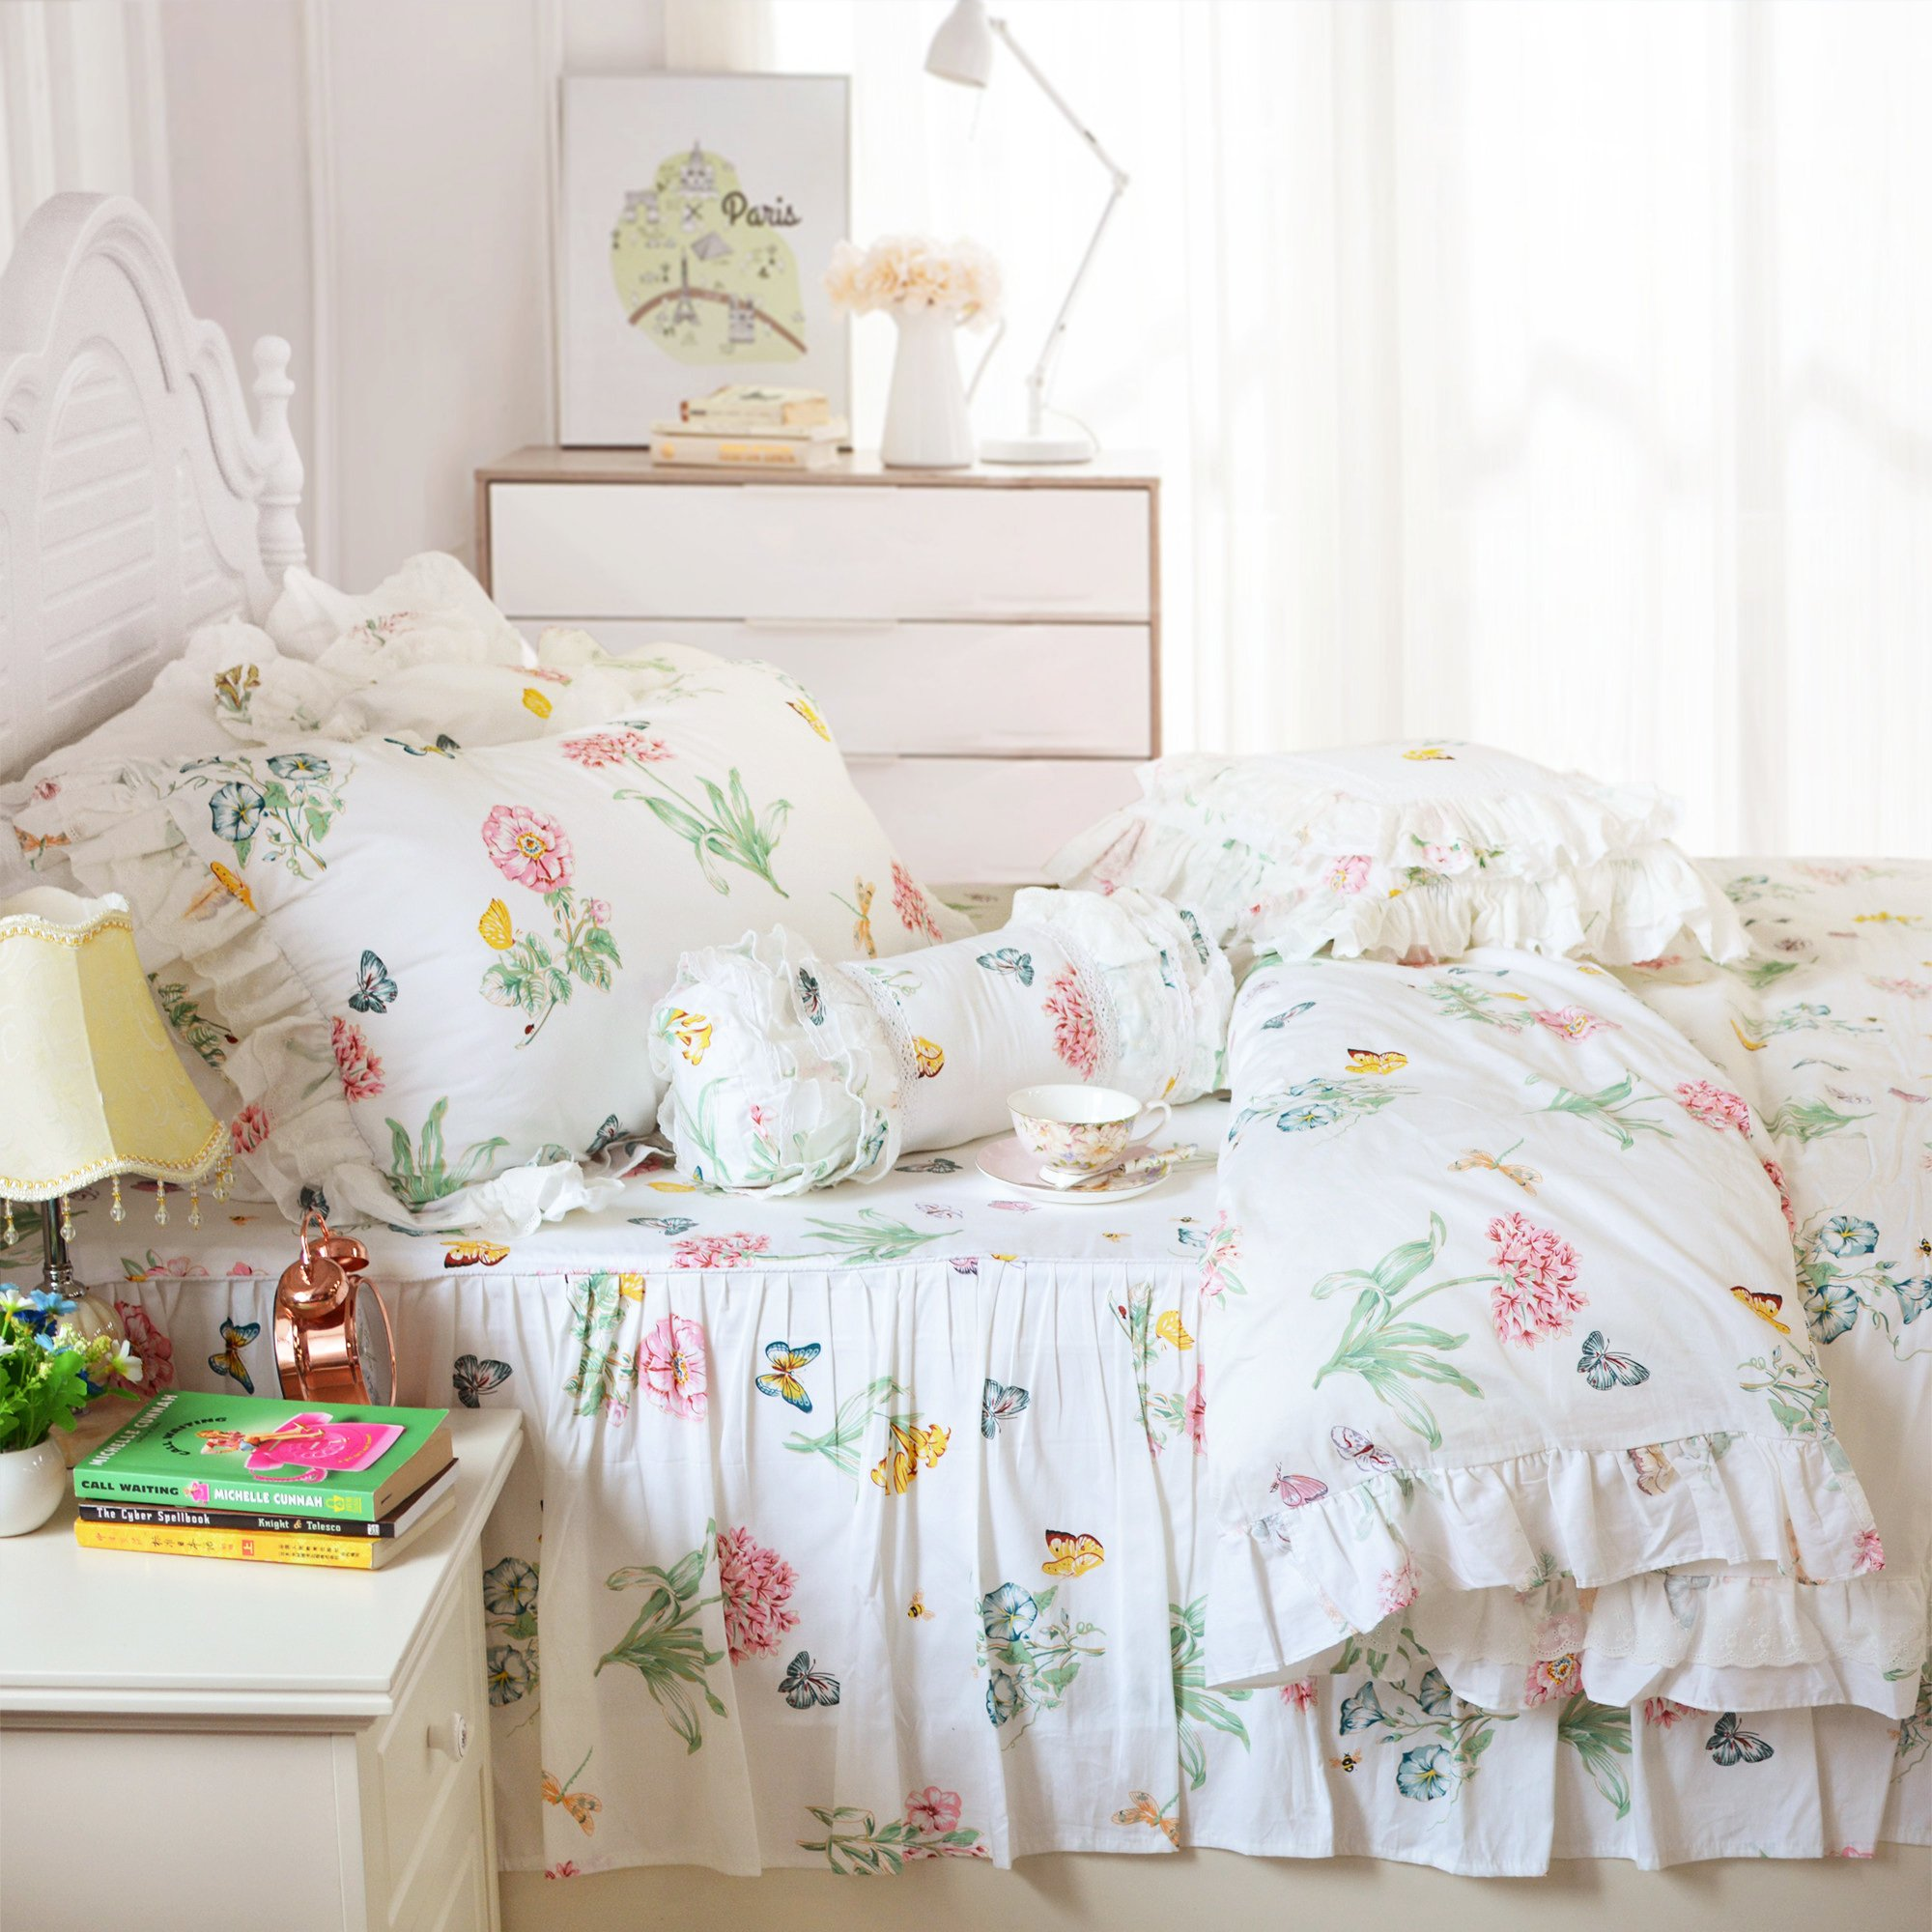 FADFAY Butterfly Meadow Bedding,Floral Butterfly Print Bedding Set,Elegant French Country Style Vintage Ruffles Duvet Cover Bed Sets with Lace Queen Size